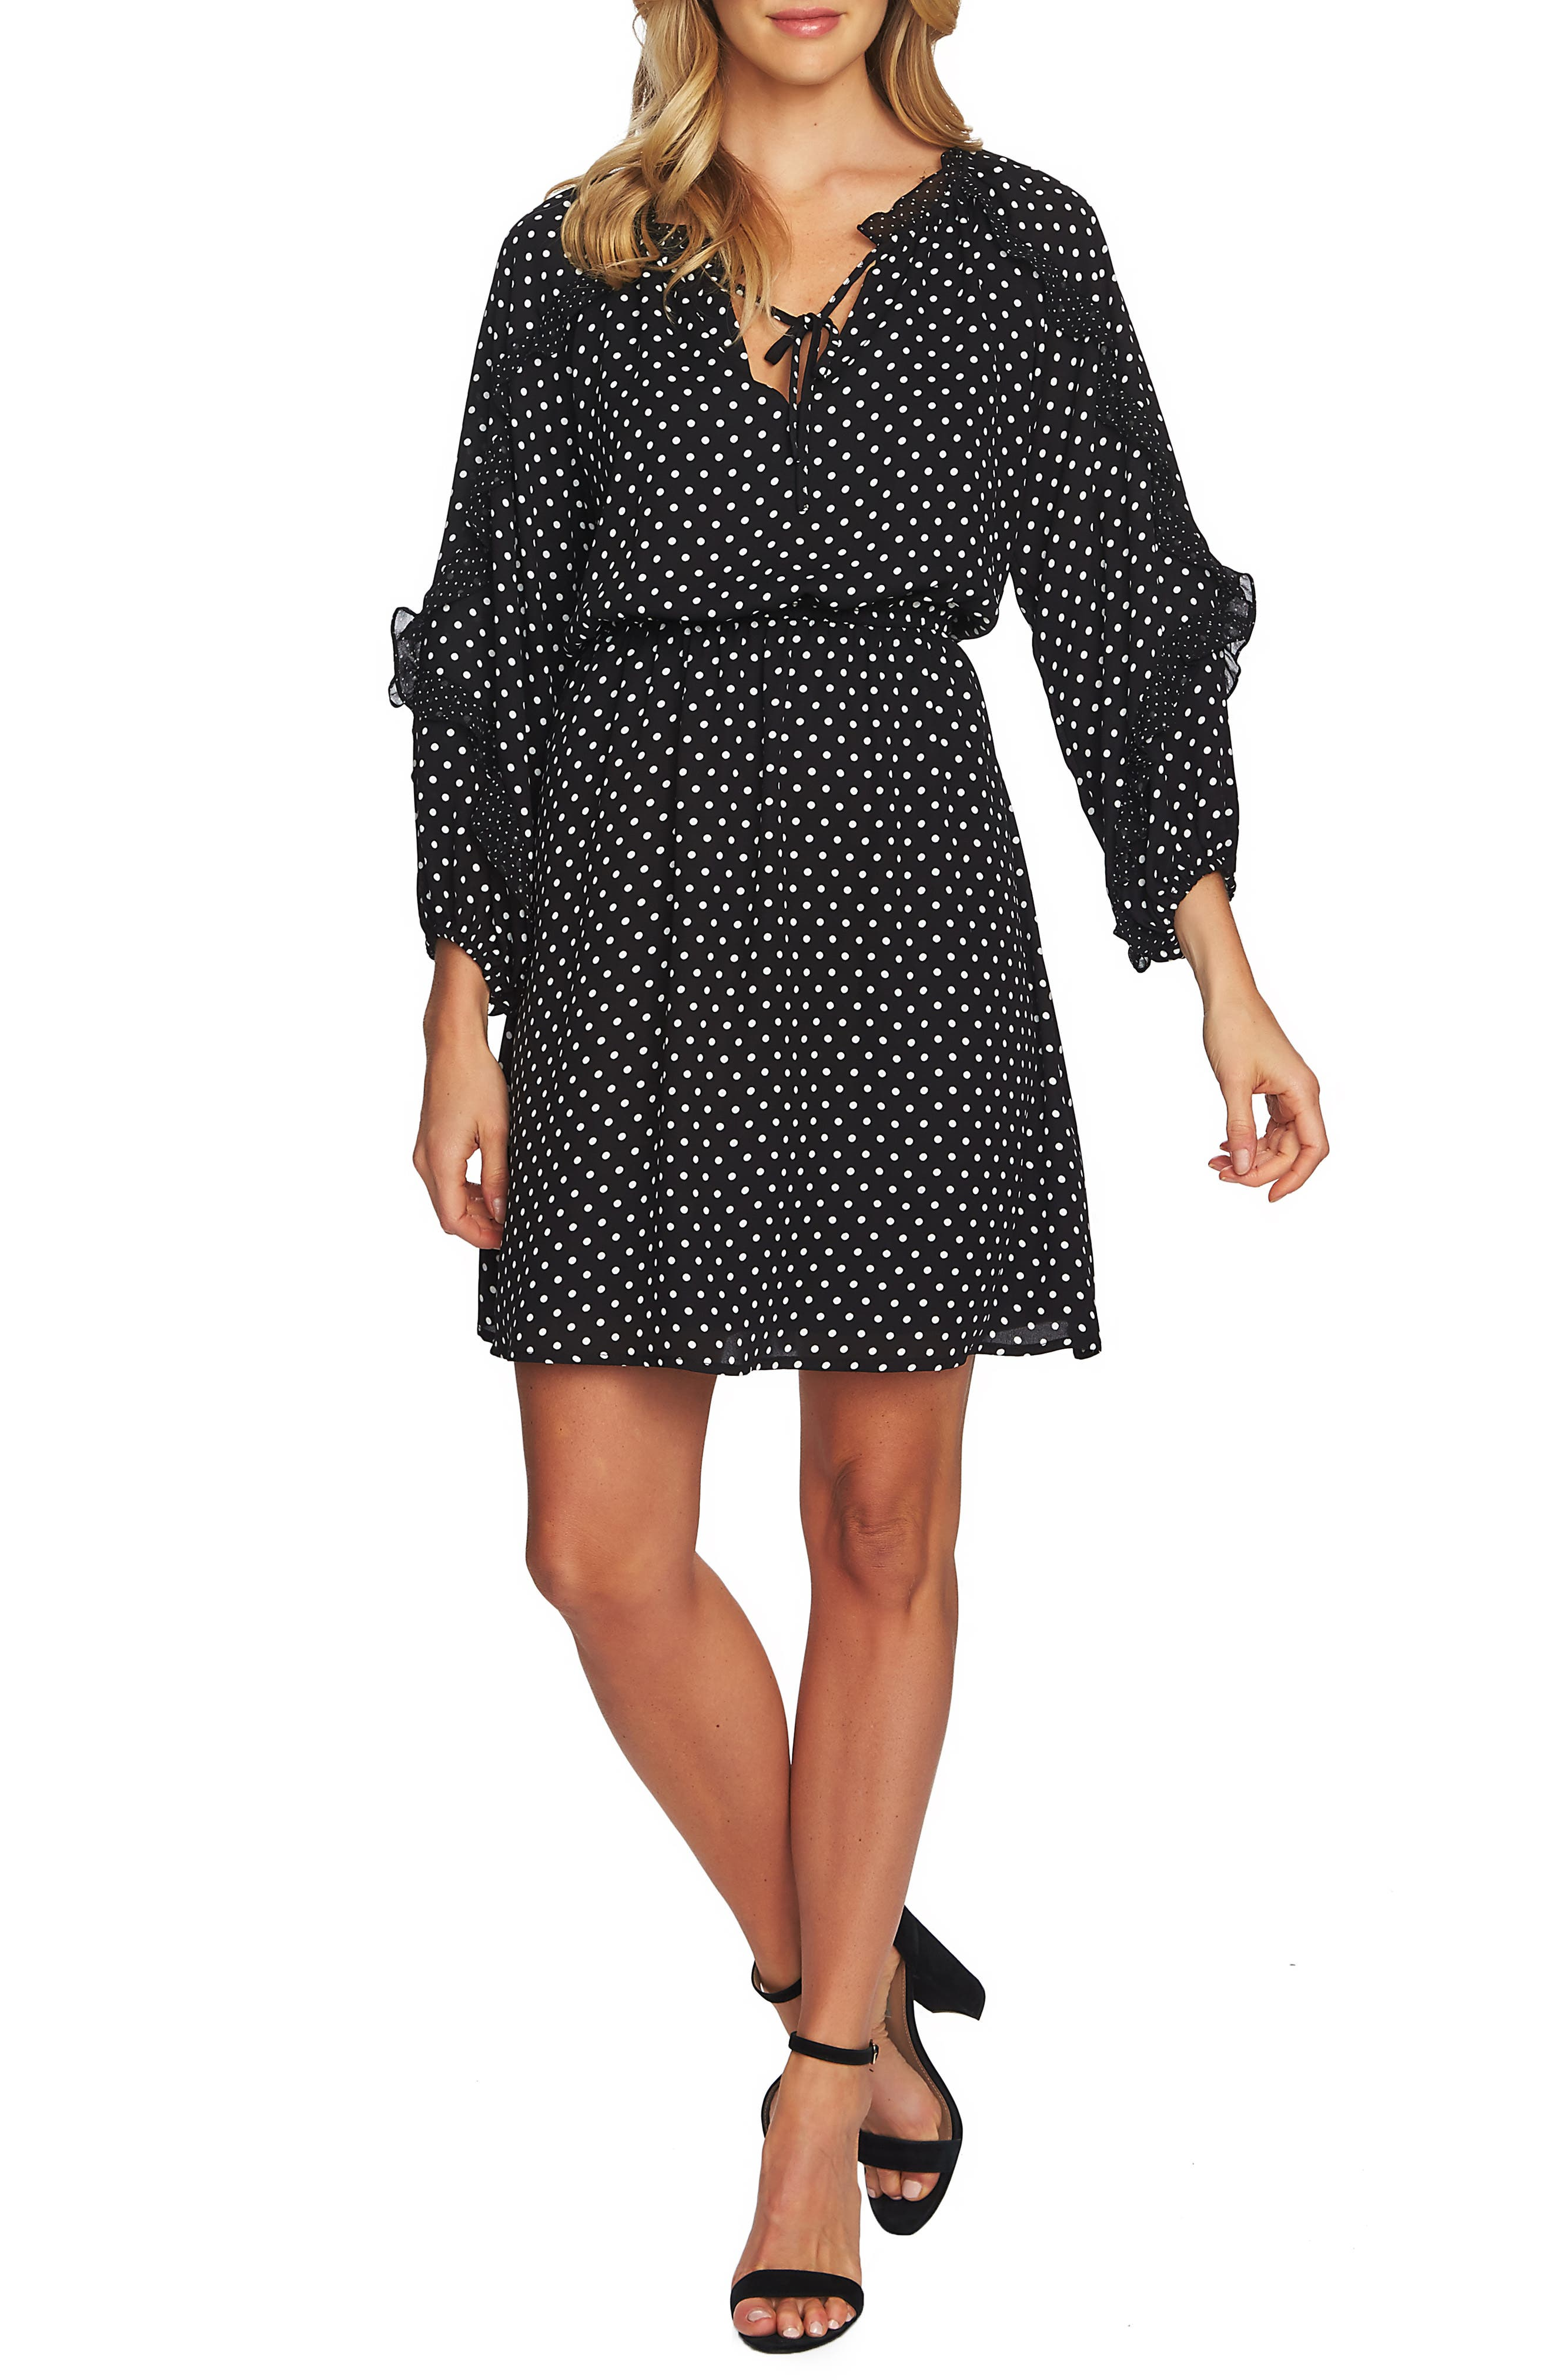 Cece Mix Dot Ruffle Dress, Black